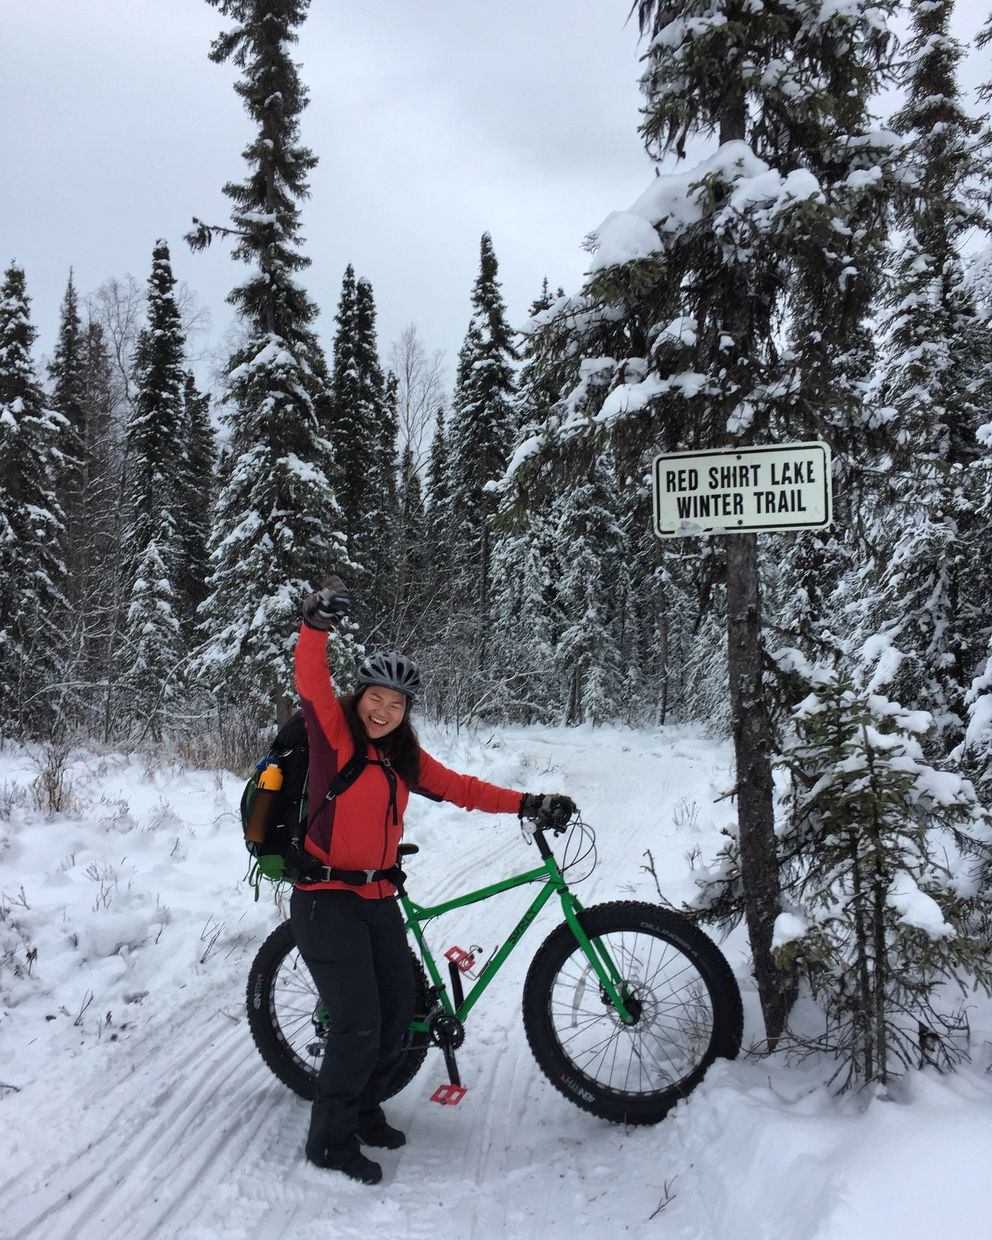 Vicky Ho dances to help ease the pain of riding a fat-tire bike as a novice on a trip to a cabin at Red Shirt Lake on Sunday. (Suzanna Caldwell)